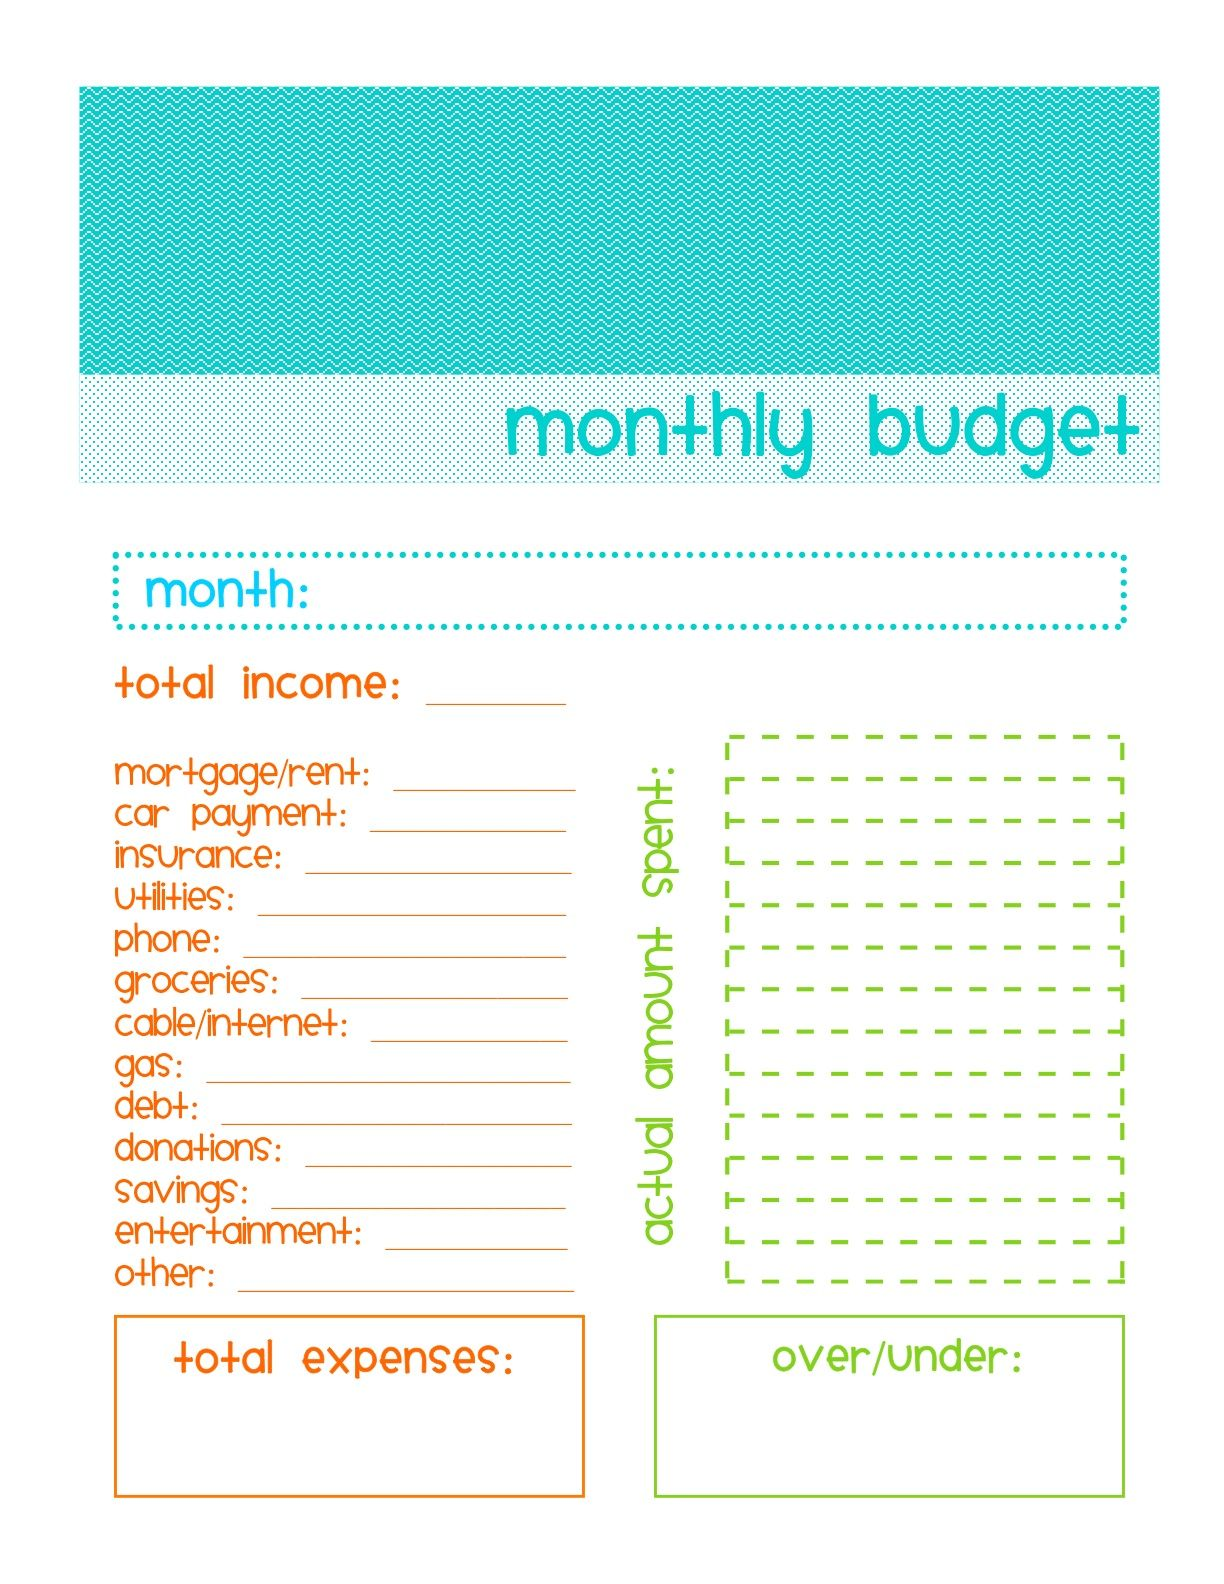 worksheet Printable Monthly Budget Worksheet 1000 images about budgeting on pinterest monthly budget free printables and simple template